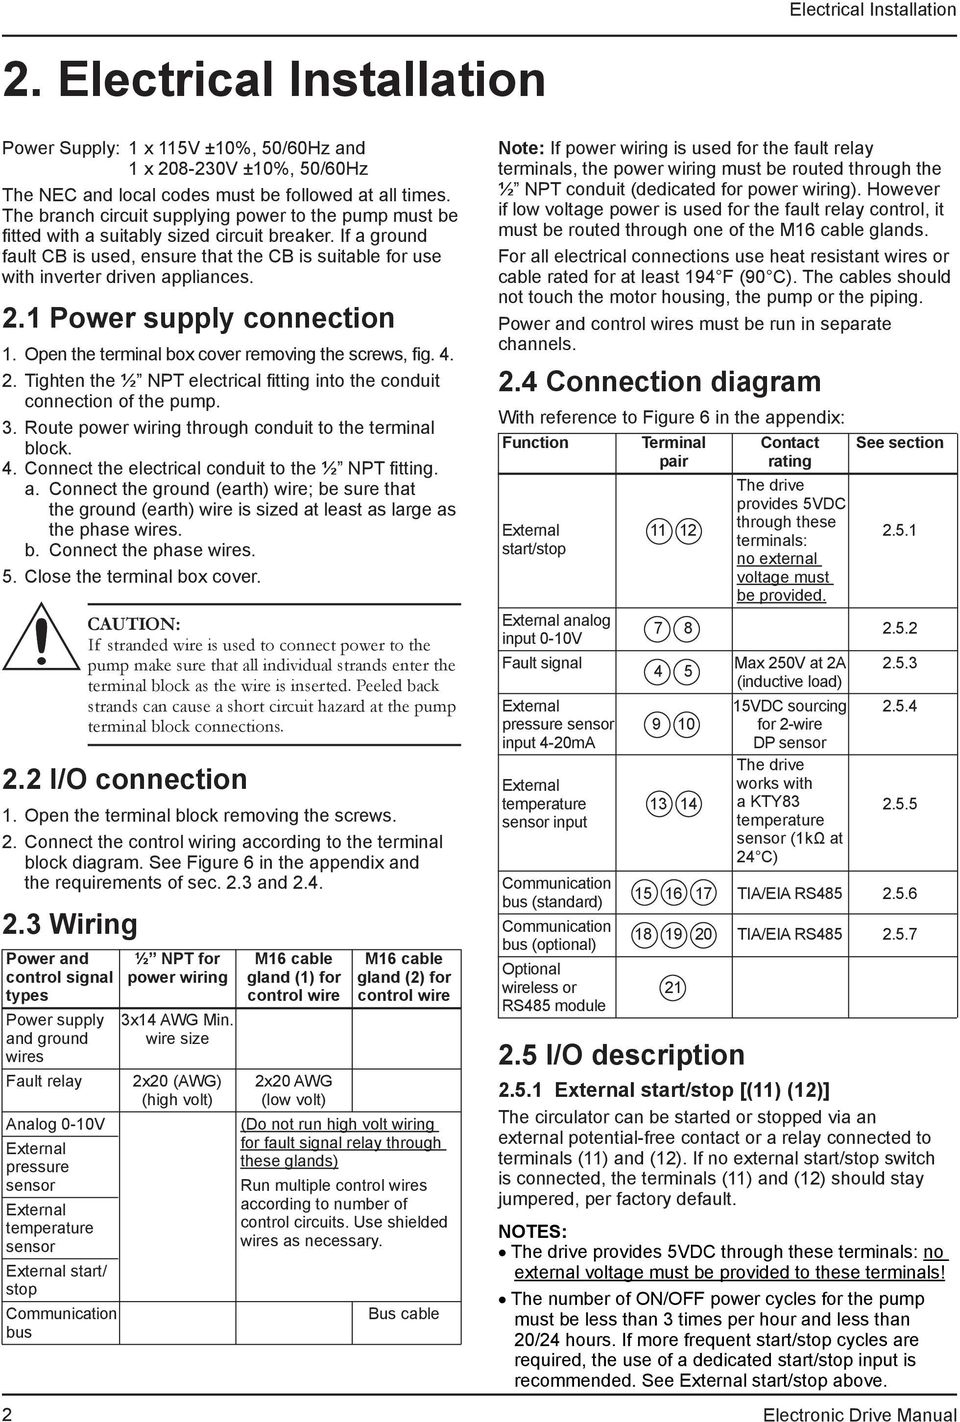 Technical Brochure P Ecocirc Xl Electronic Drive Manual - Pdf - Start Stop Switch Wiring Diagram